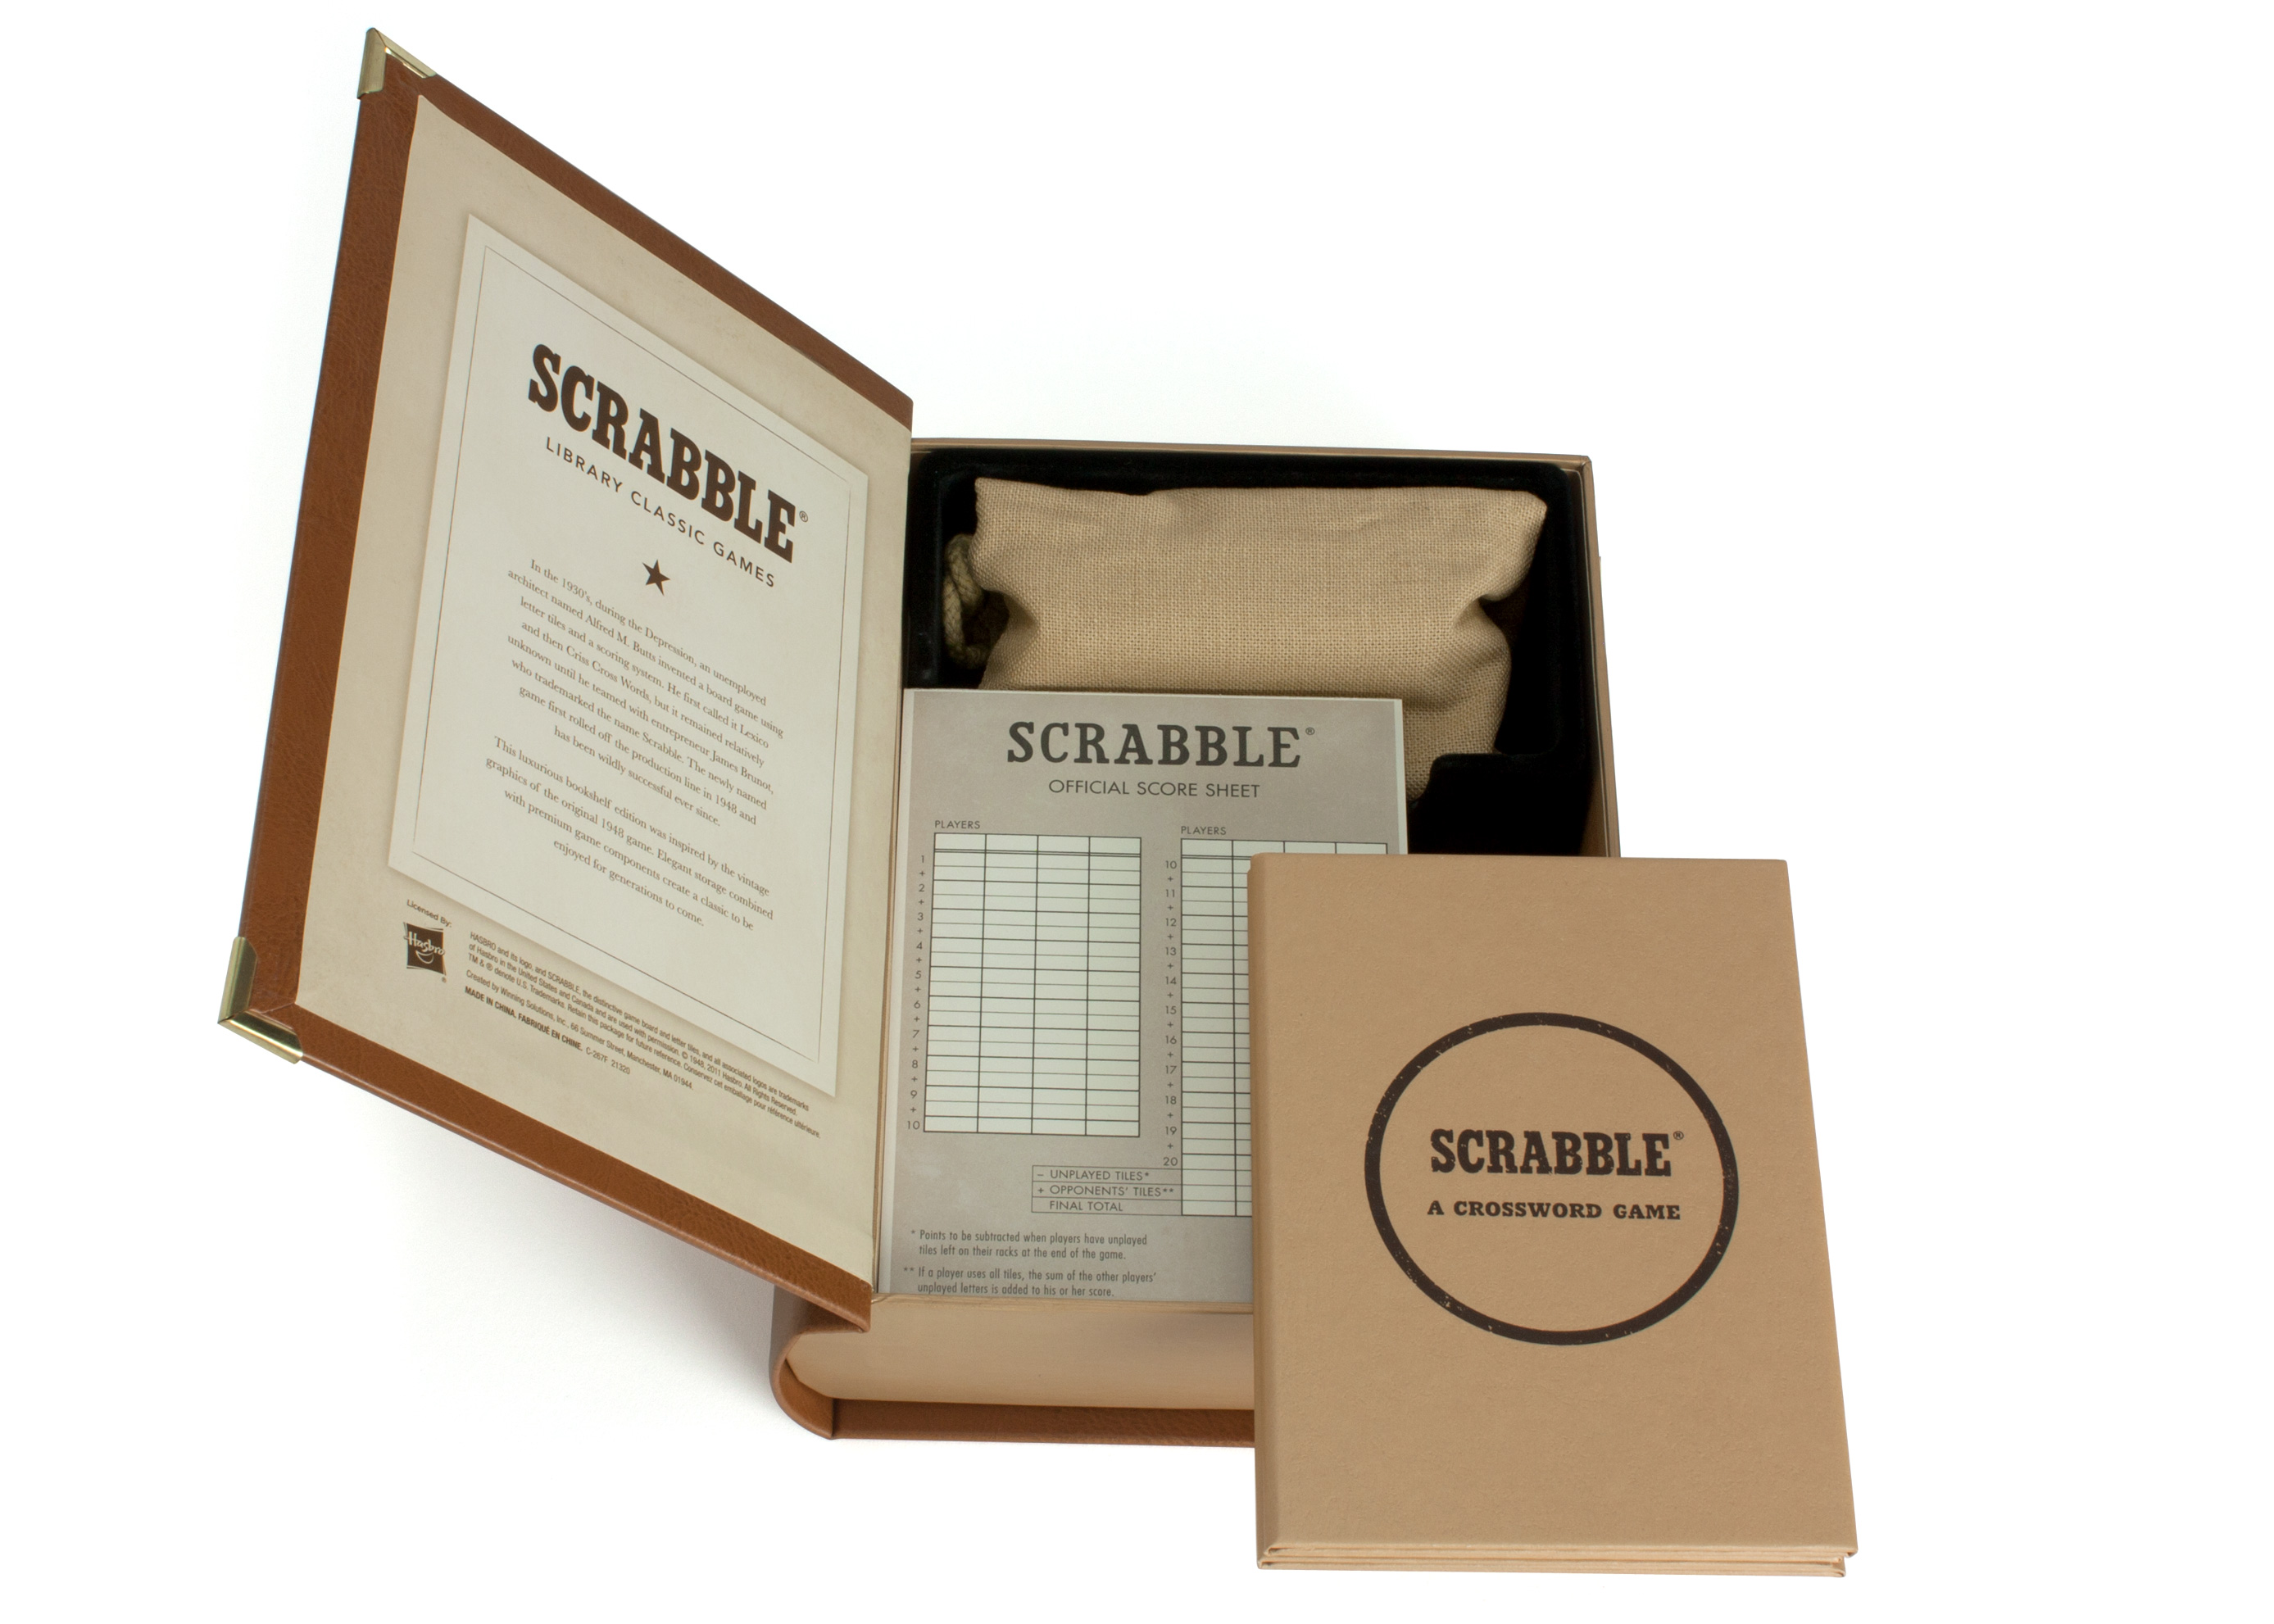 Scrabble library classic edition -great family game for summer.